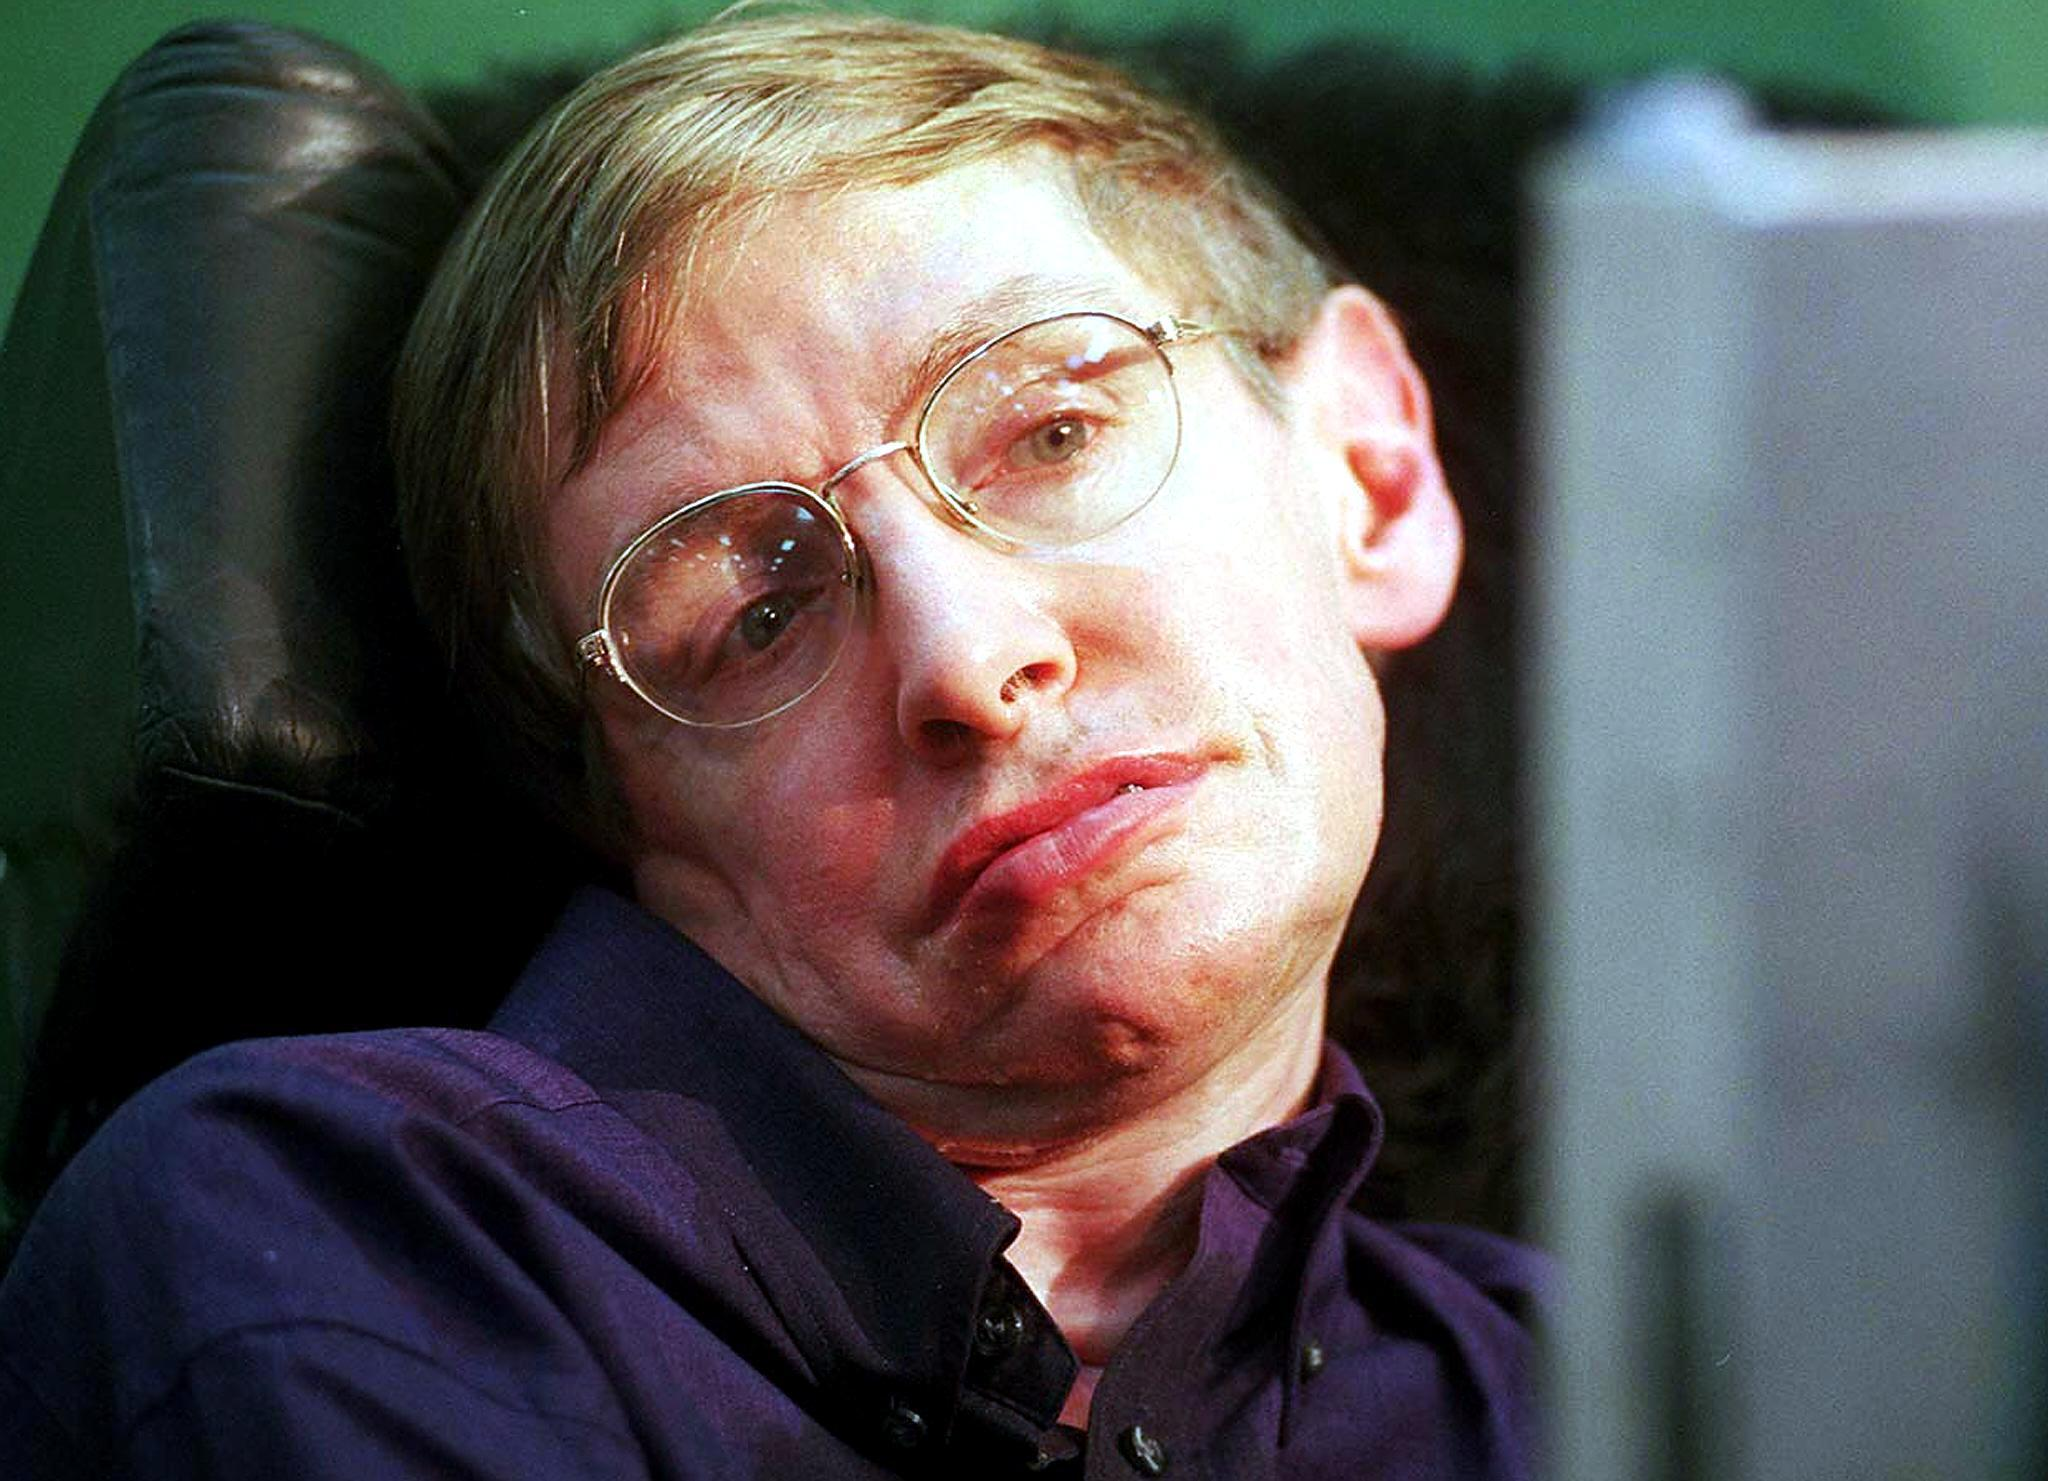 World-renowned physicist Stephen Hawking answers questions with the help of a voice synthesiser during a press conference at the Tata Institute of Fundamental Research (TIFR) in Bombay, 06 January 2001.